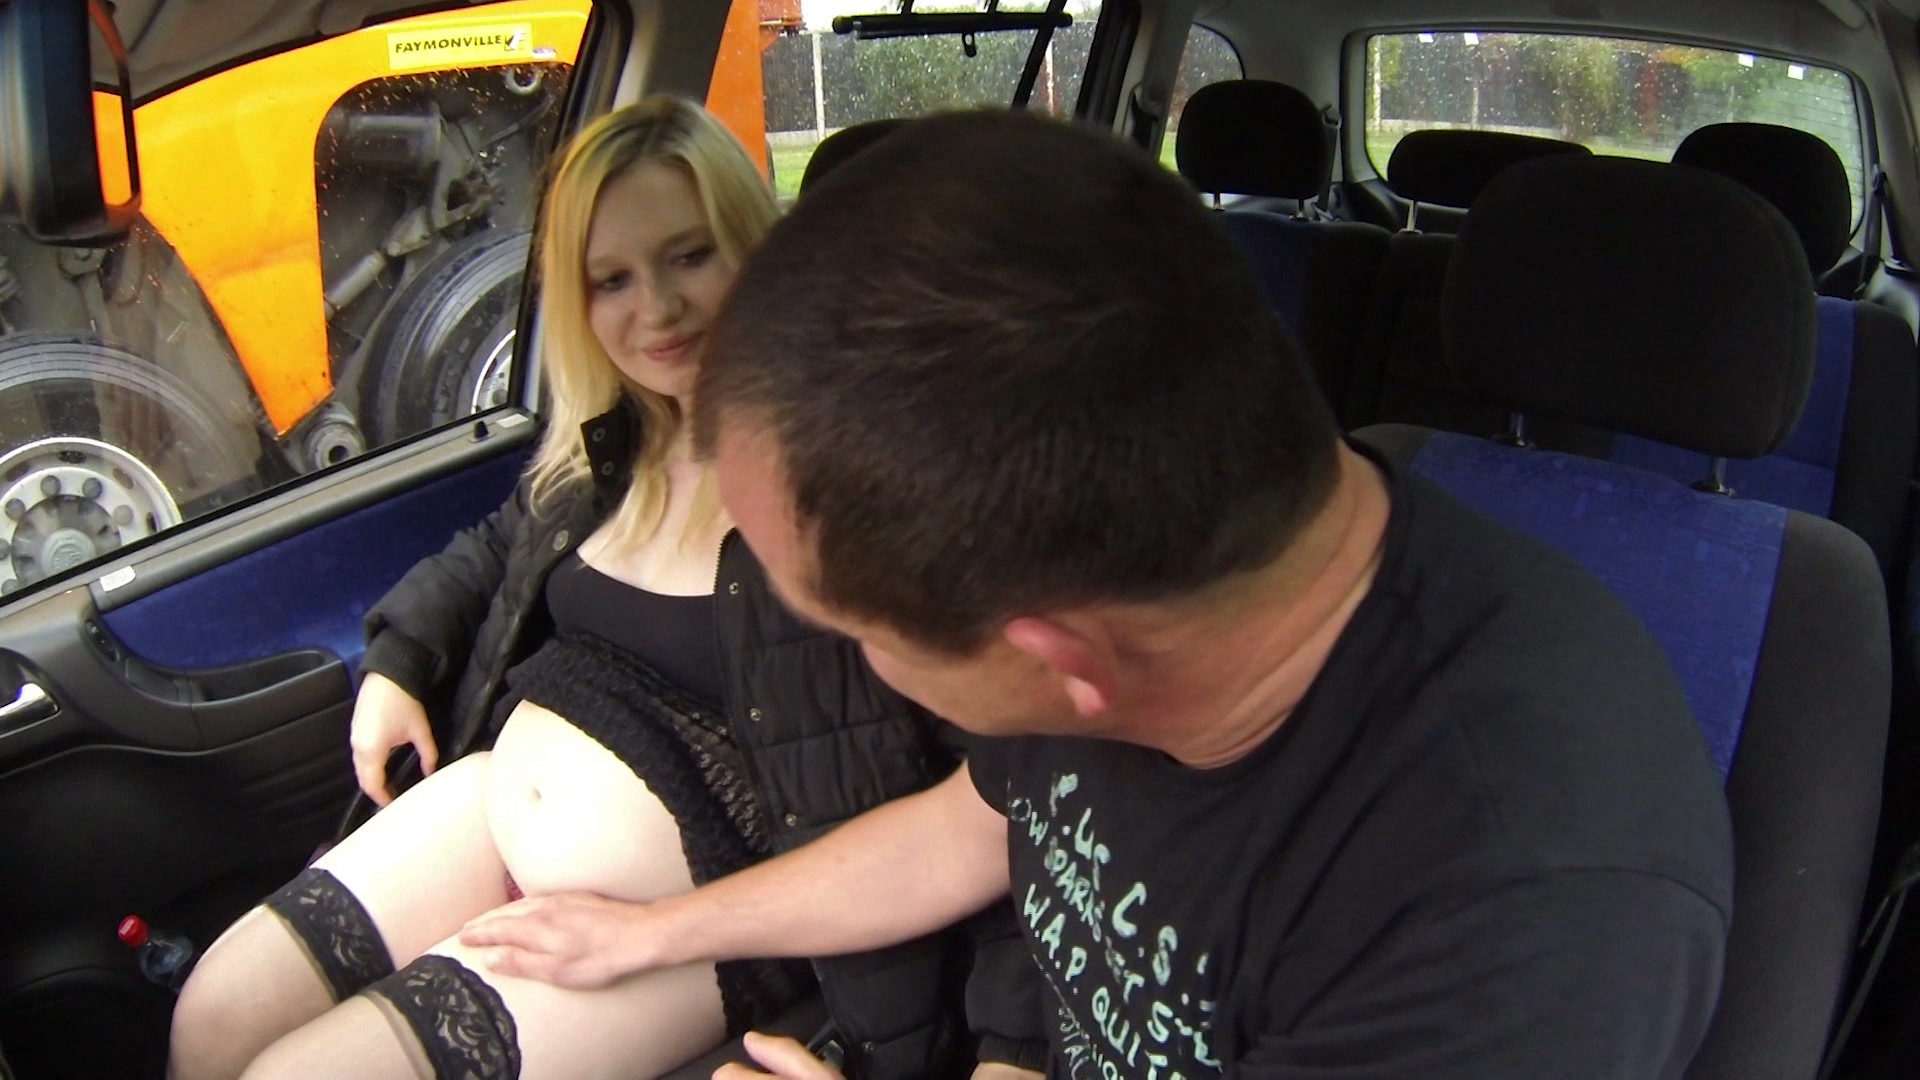 Czech Bitch – blonde and pregnant girl sucks and fucks for cash in his car